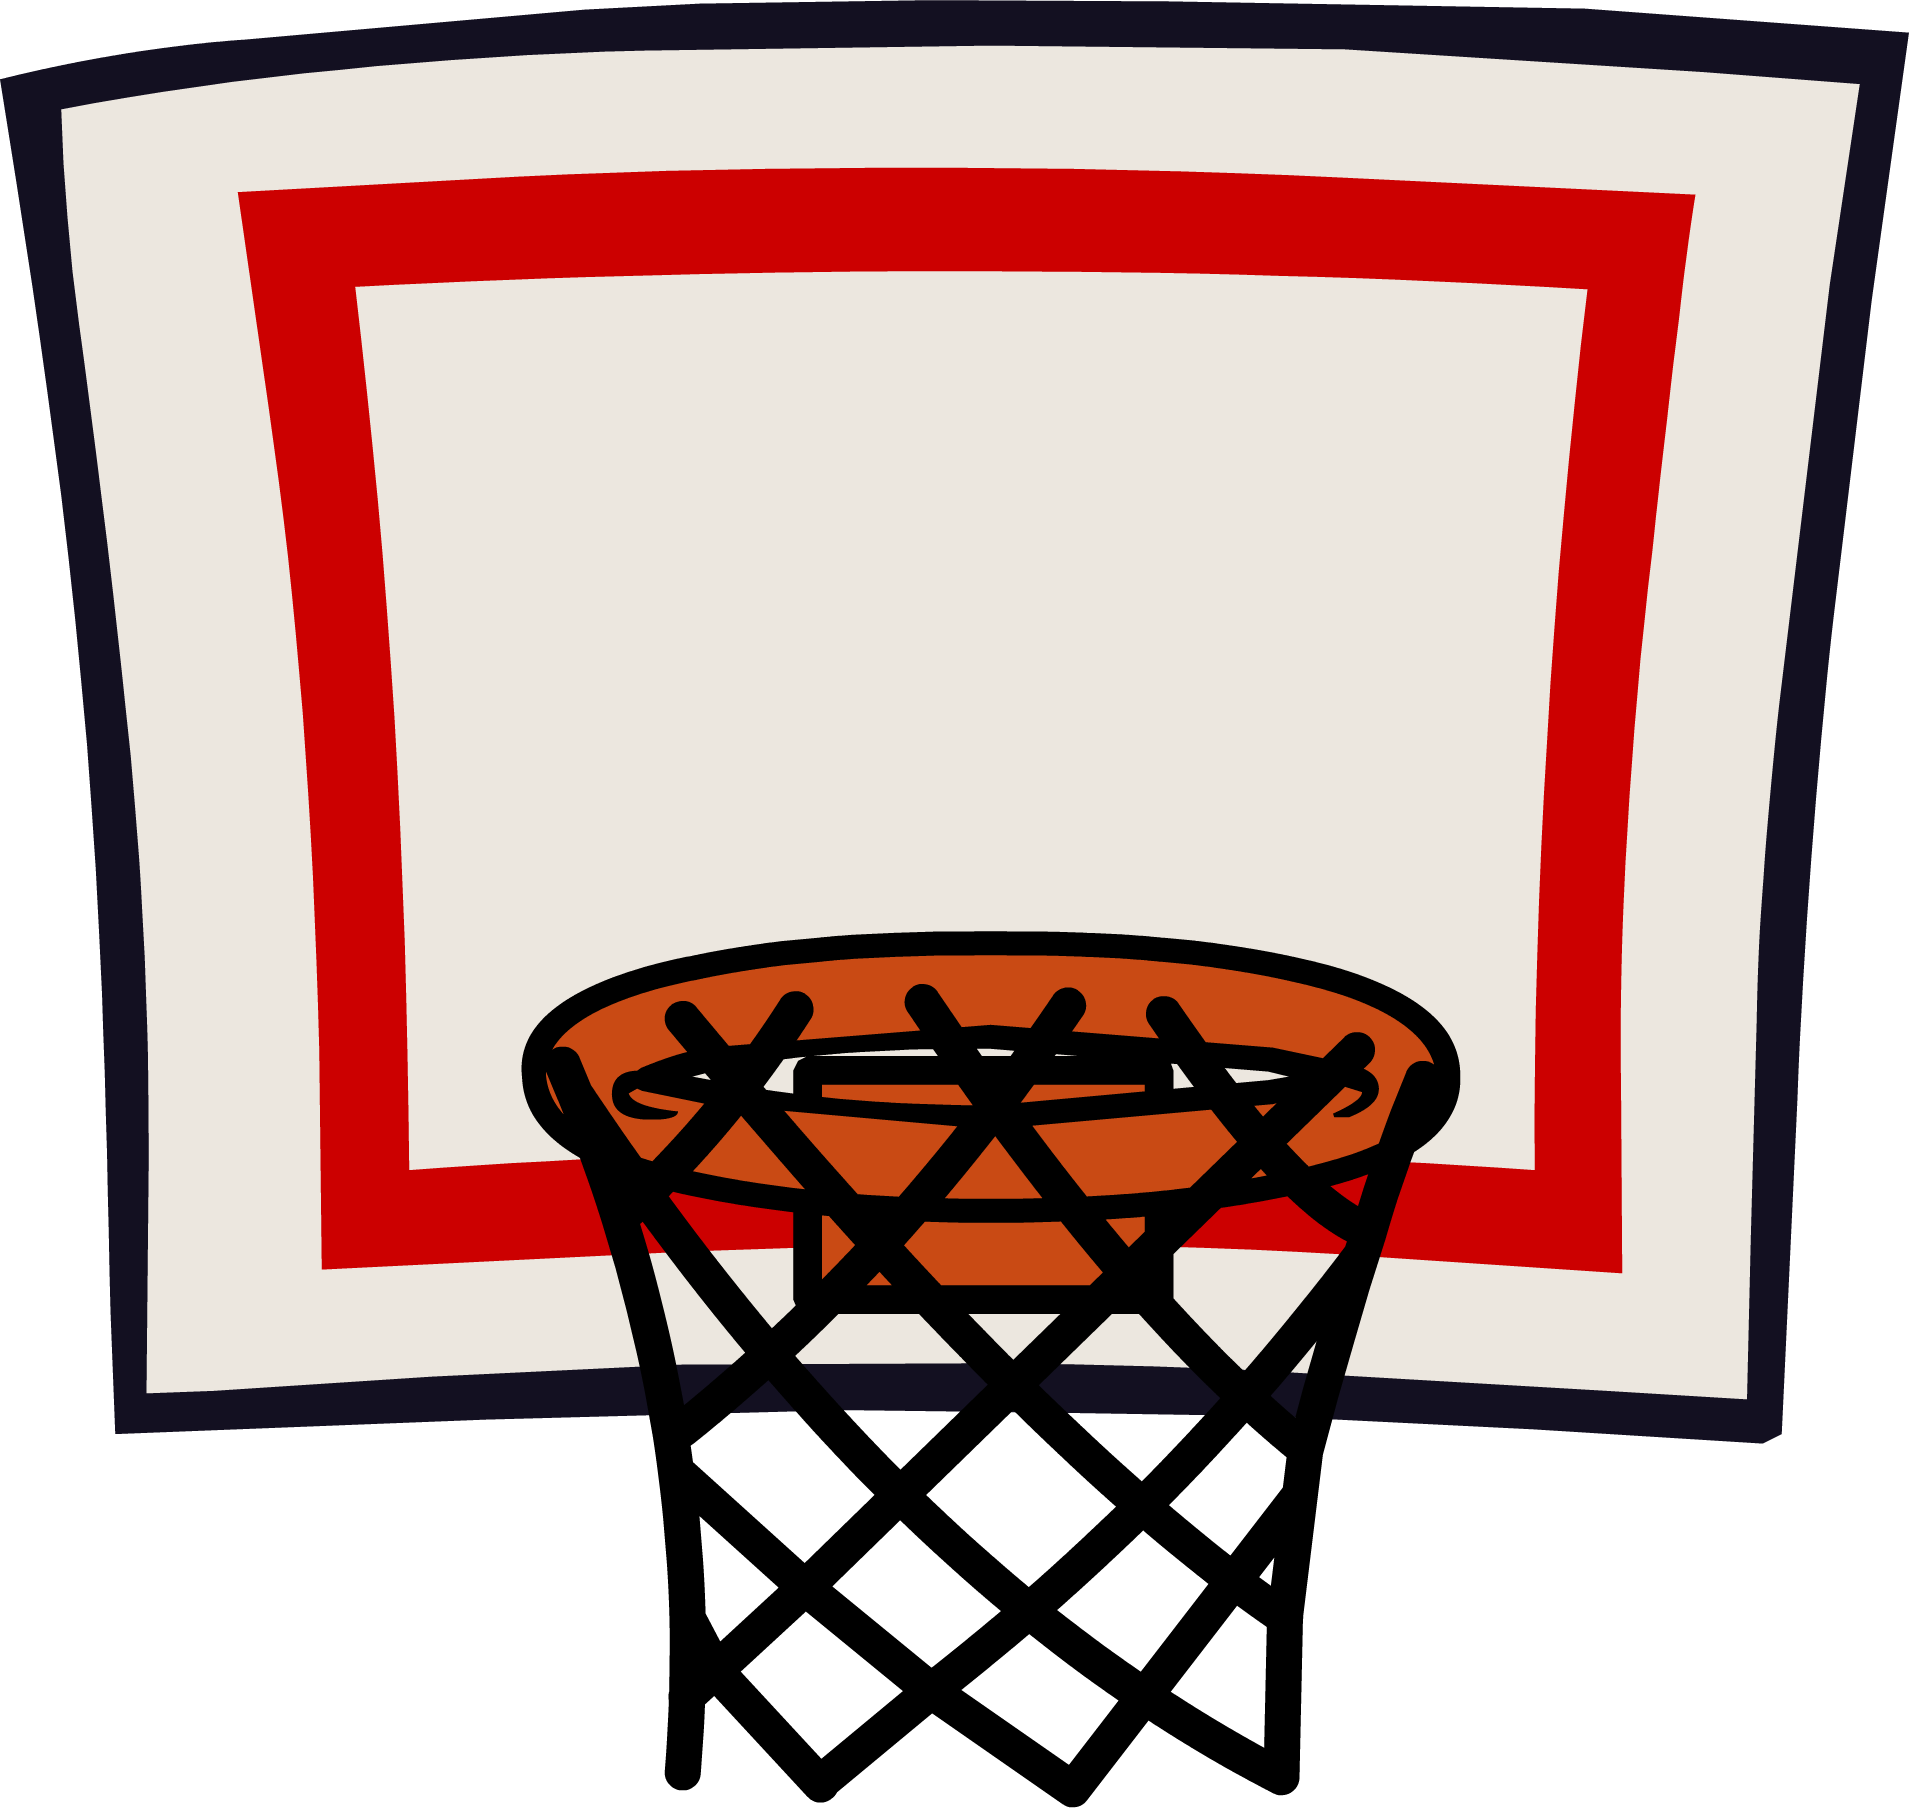 Basketball net clipart vector freeuse stock Basketball Net | Club Penguin Wiki | FANDOM powered by Wikia vector freeuse stock